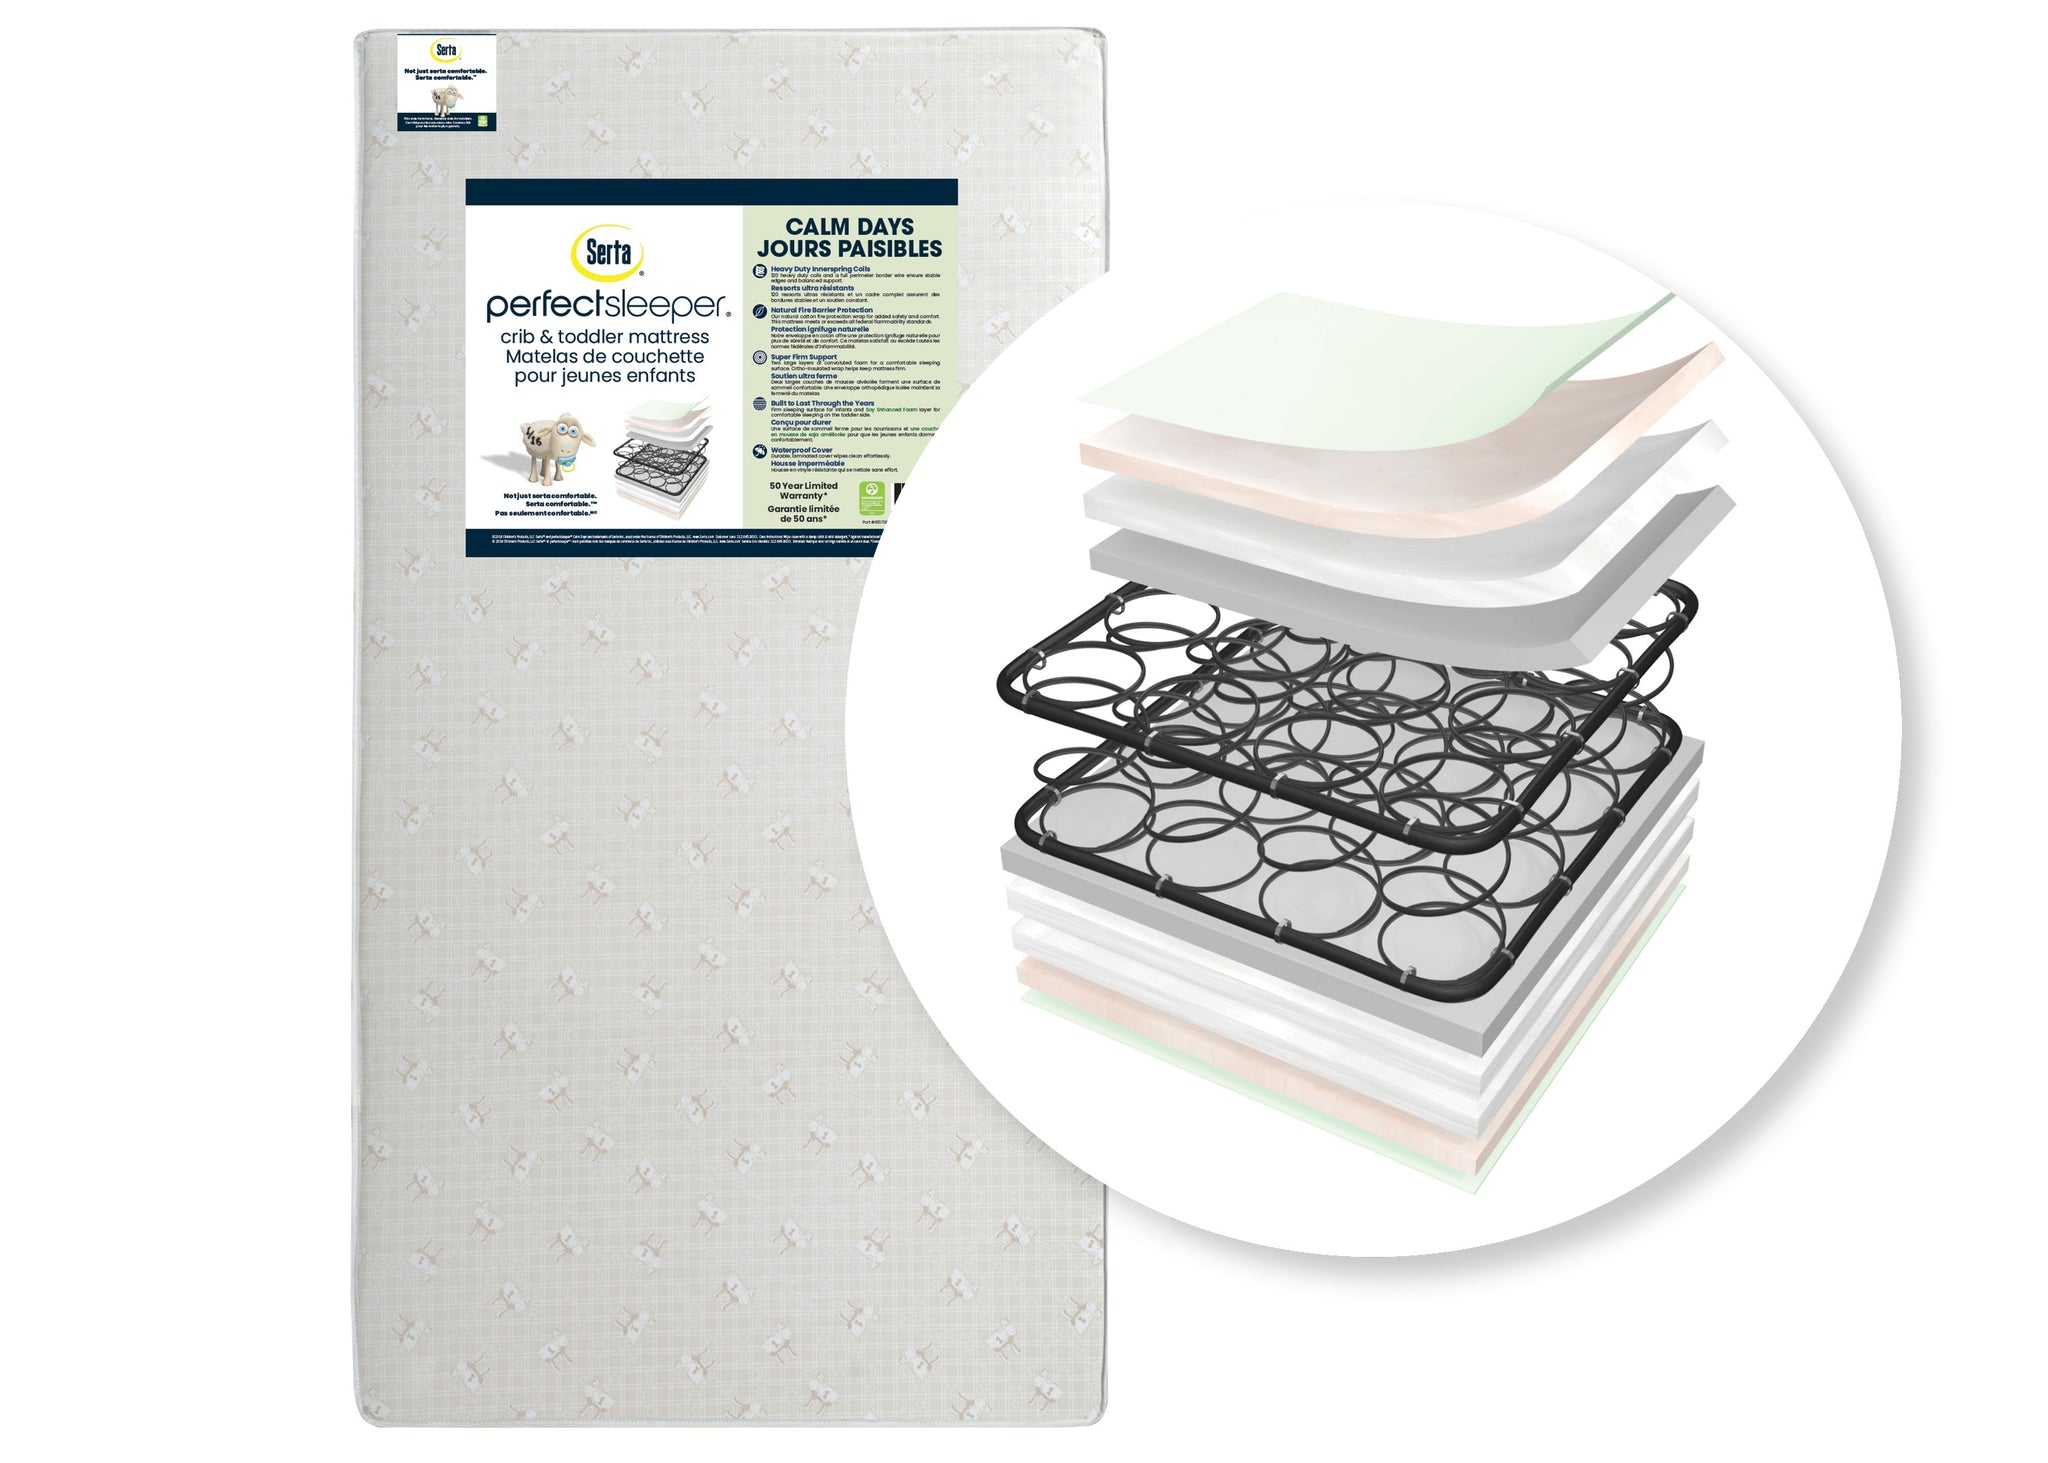 Serta Perfect Sleeper Calm Days Crib and Toddler Mattress, Cutout View No Color (NO)